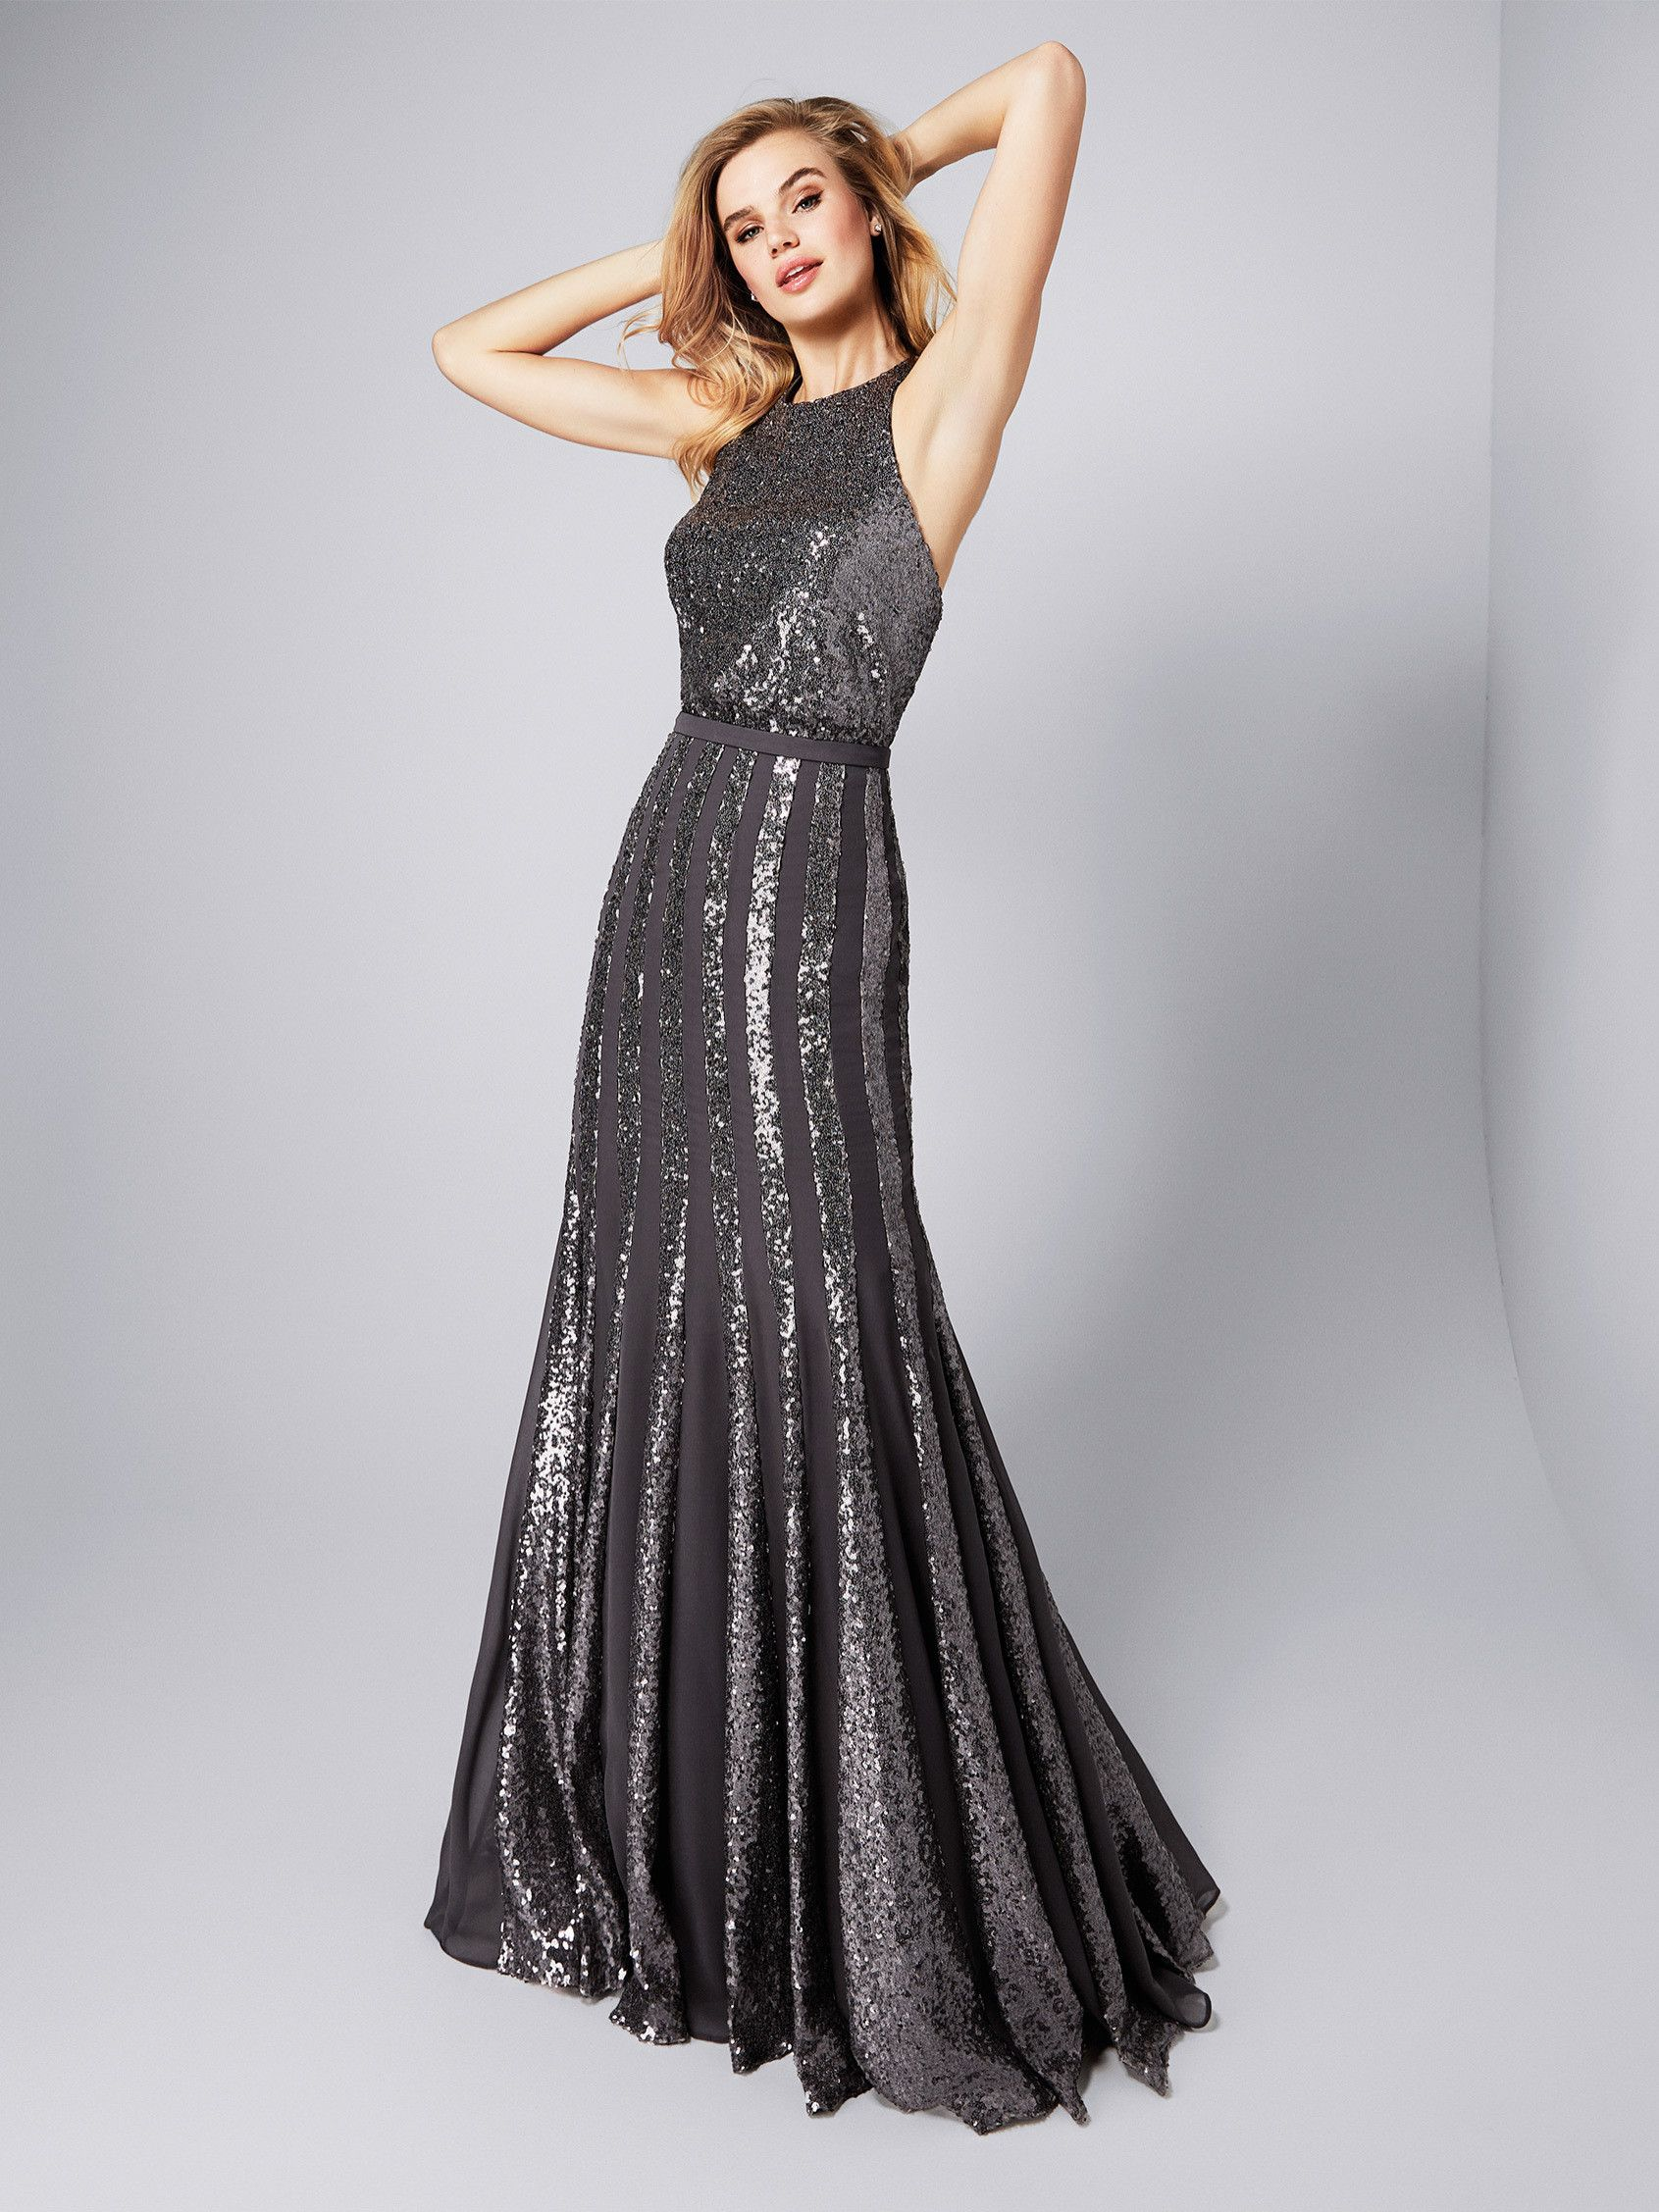 251643b9858 Black gala dress | Make up | Black gala dress, Formal dresses και ...